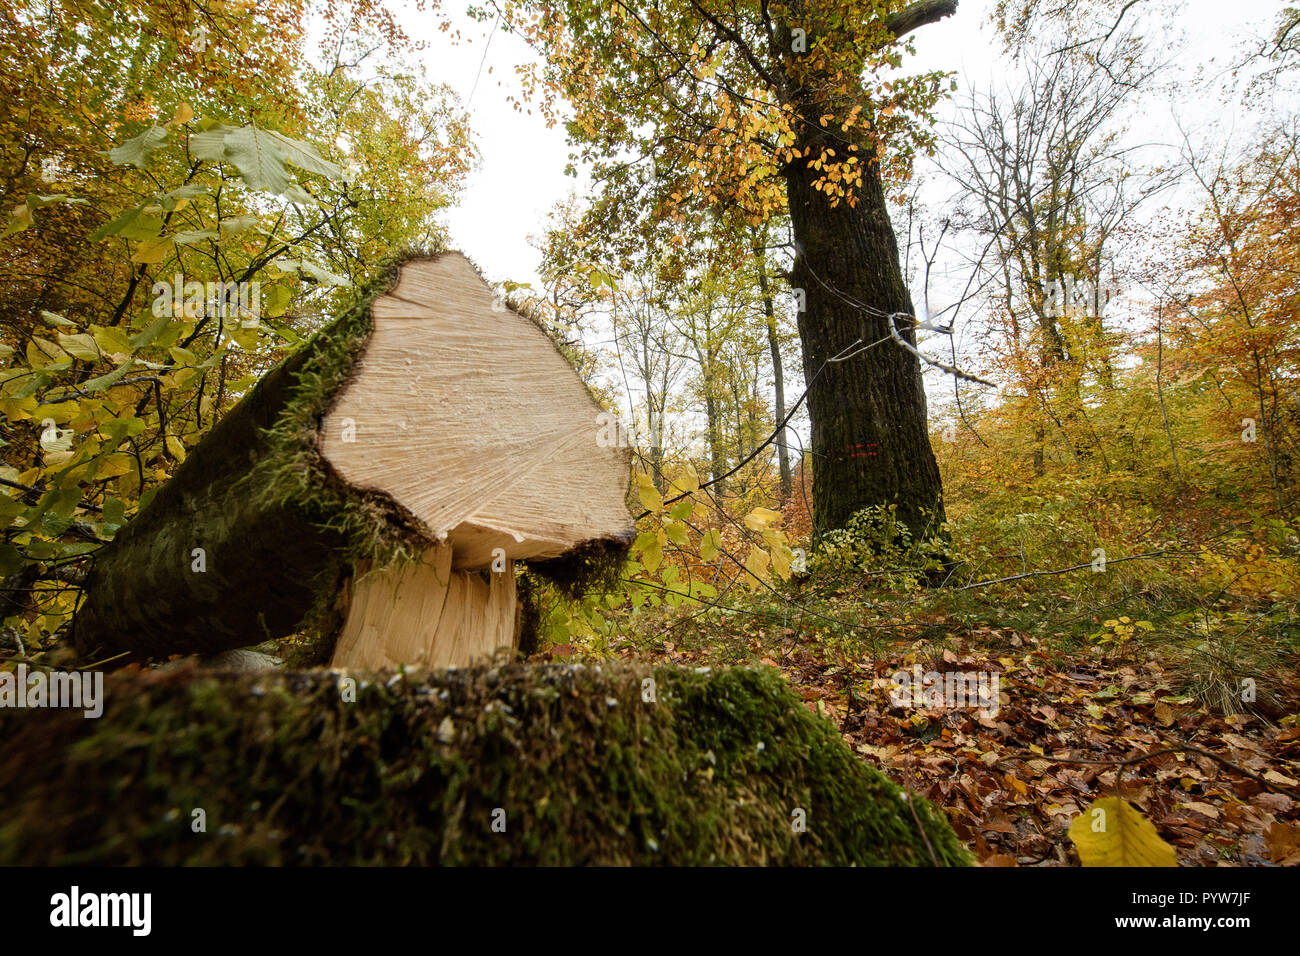 Waldenbuch, Germany. 30th Oct, 2018. A felled beech tree lies in front of an oak tree during the presentation of measures to protect the Juchten beetle within the framework of the Stuttgart 21 railway project. This offers potential as a habitat for Juchten beetles and was therefore exempted. As compensation for felled trees in Stuttgart, measures are being carried out in a forest near Waldenbuch to improve and secure the habitat of Juchten beetle populations living there in the long term. Credit: Sebastian Gollnow/dpa/Alamy Live News - Stock Image